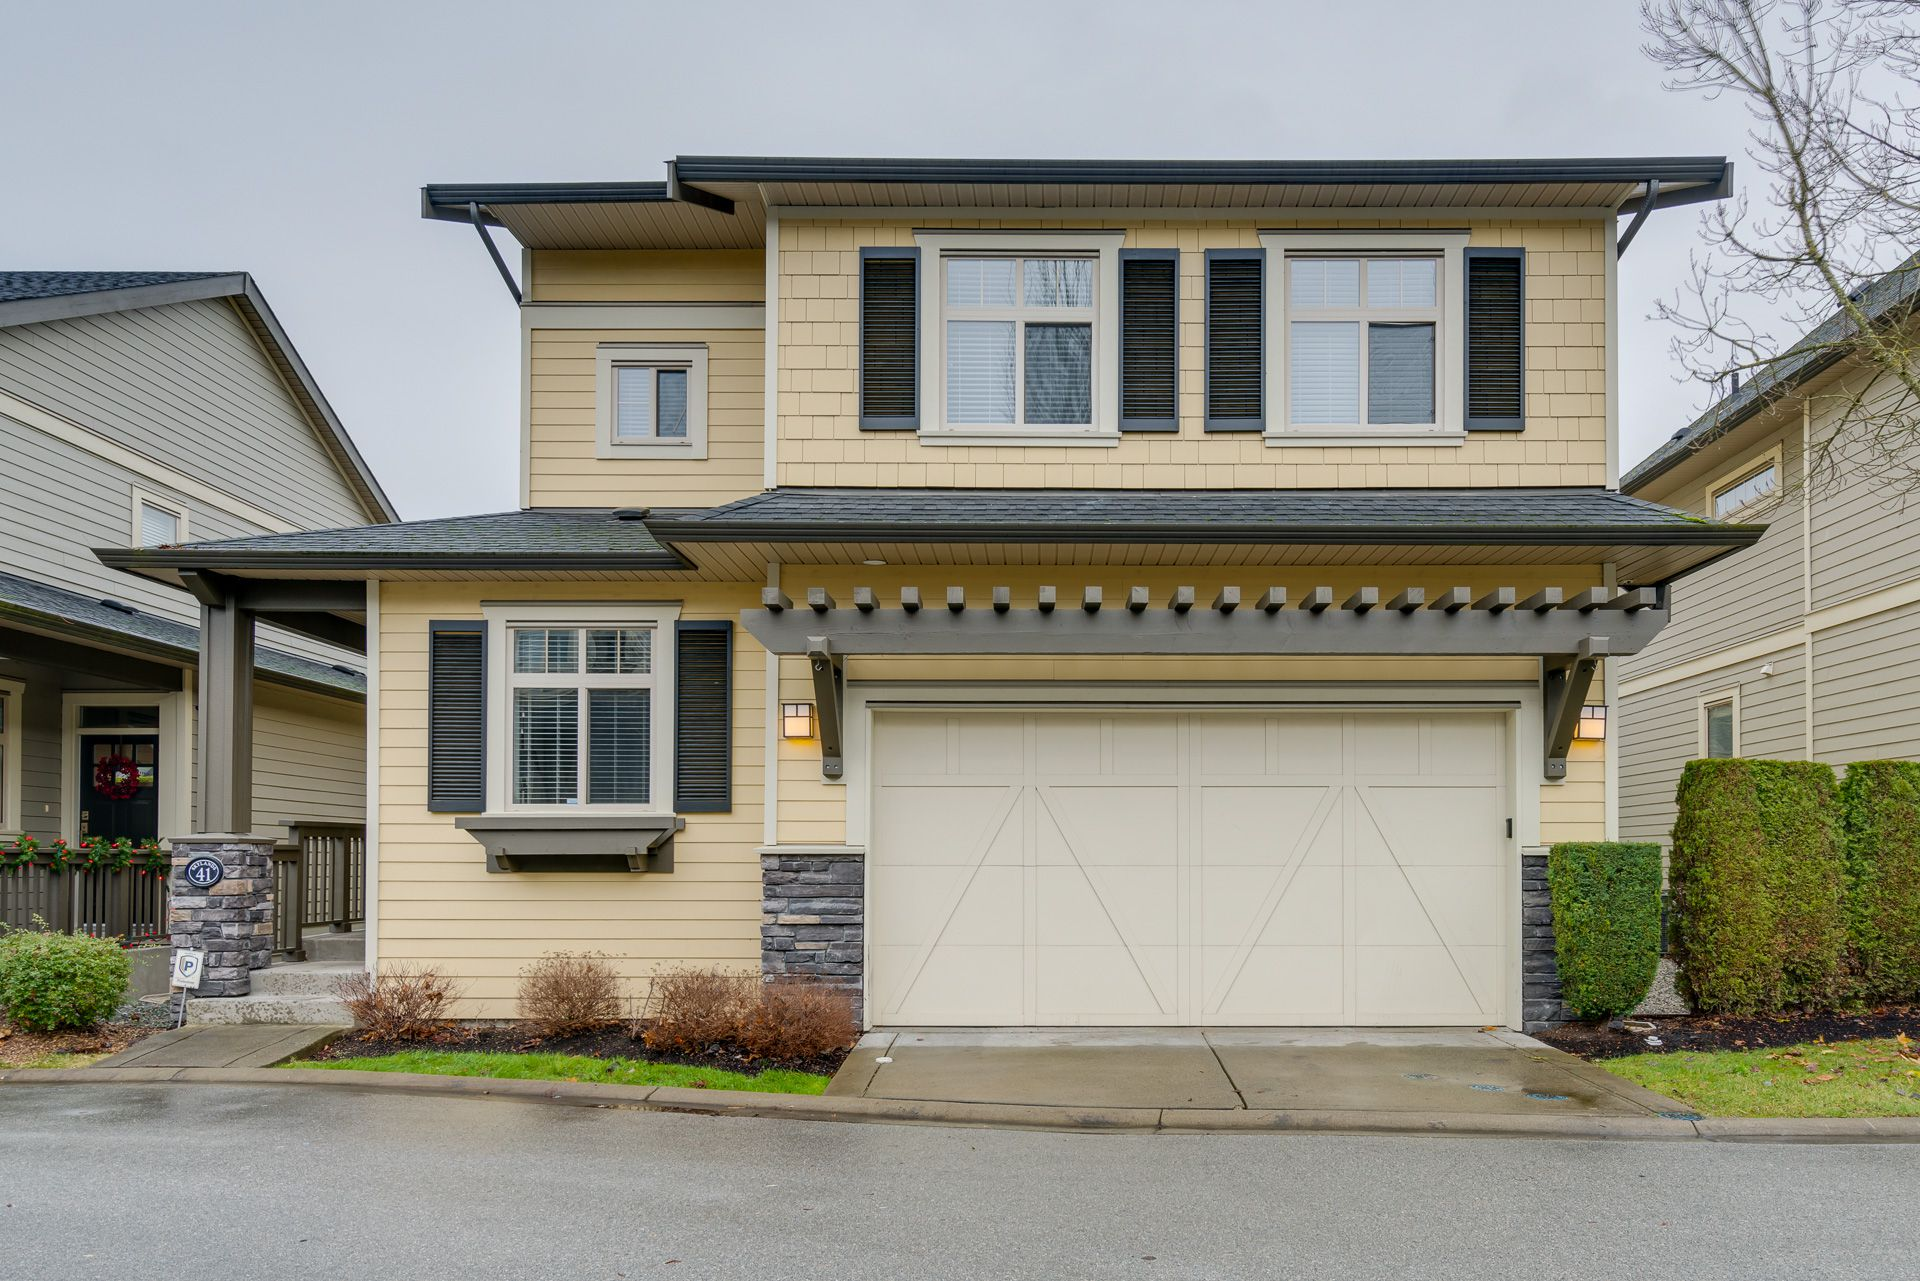 """Main Photo: 41 15885 26 Avenue in Surrey: Grandview Surrey Townhouse for sale in """"SKYLANDS"""" (South Surrey White Rock)  : MLS®# R2327870"""